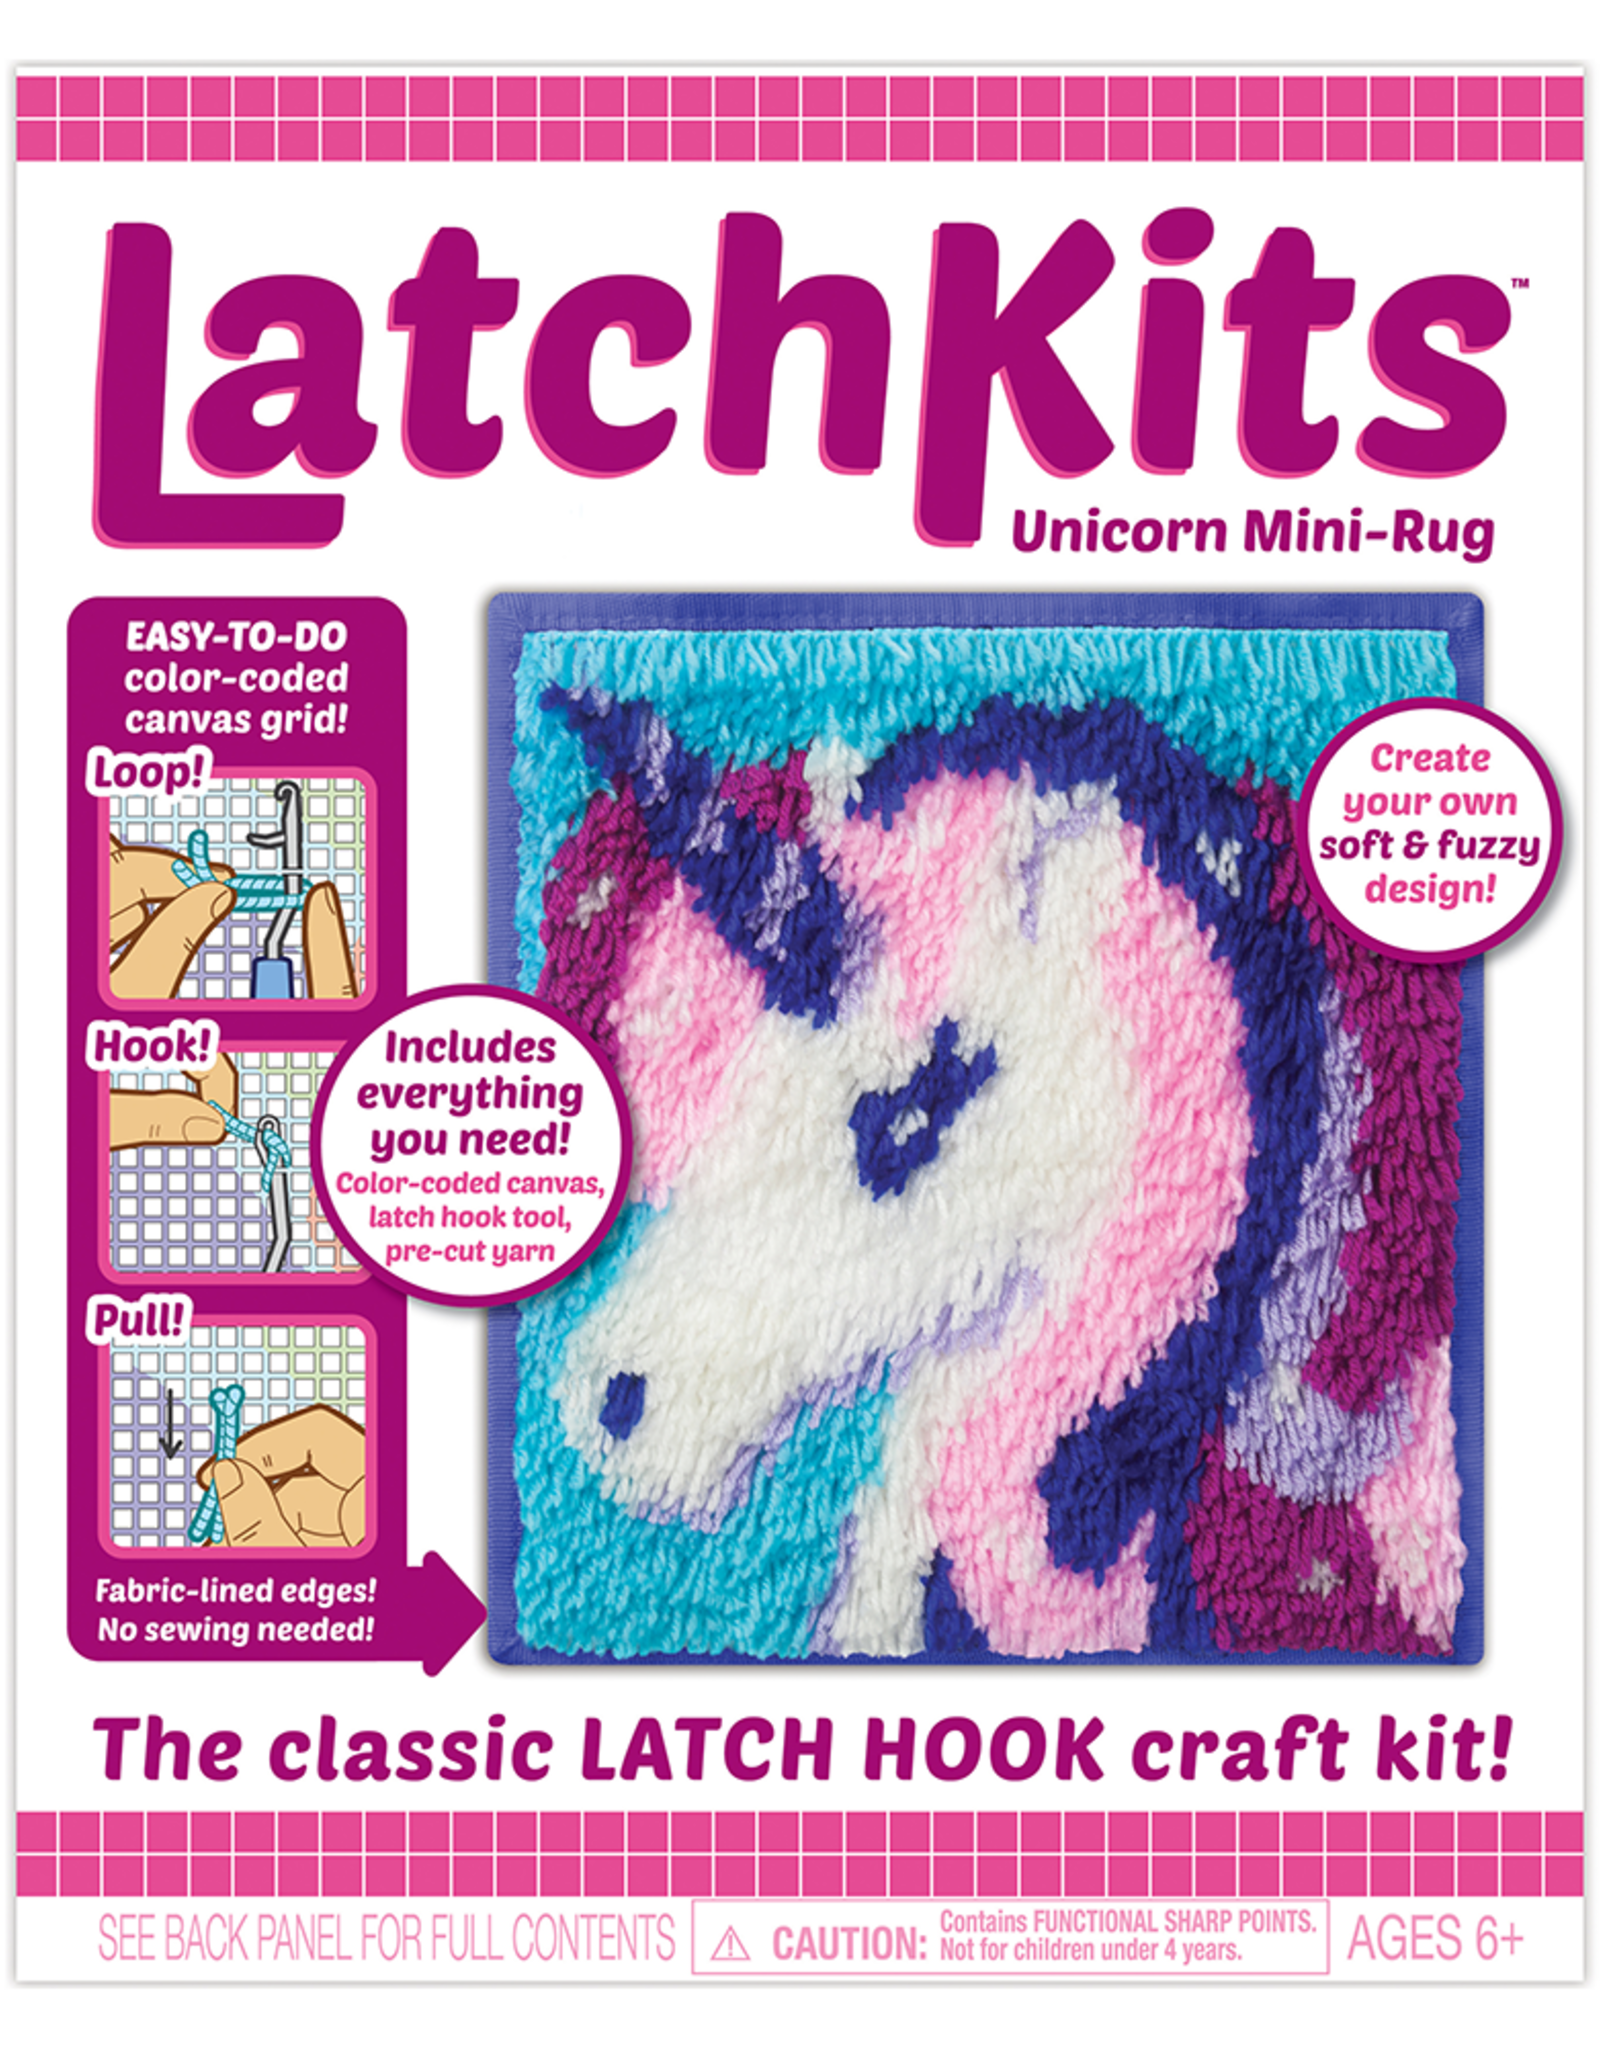 PLAYMONSTER Latchkit- unicorn